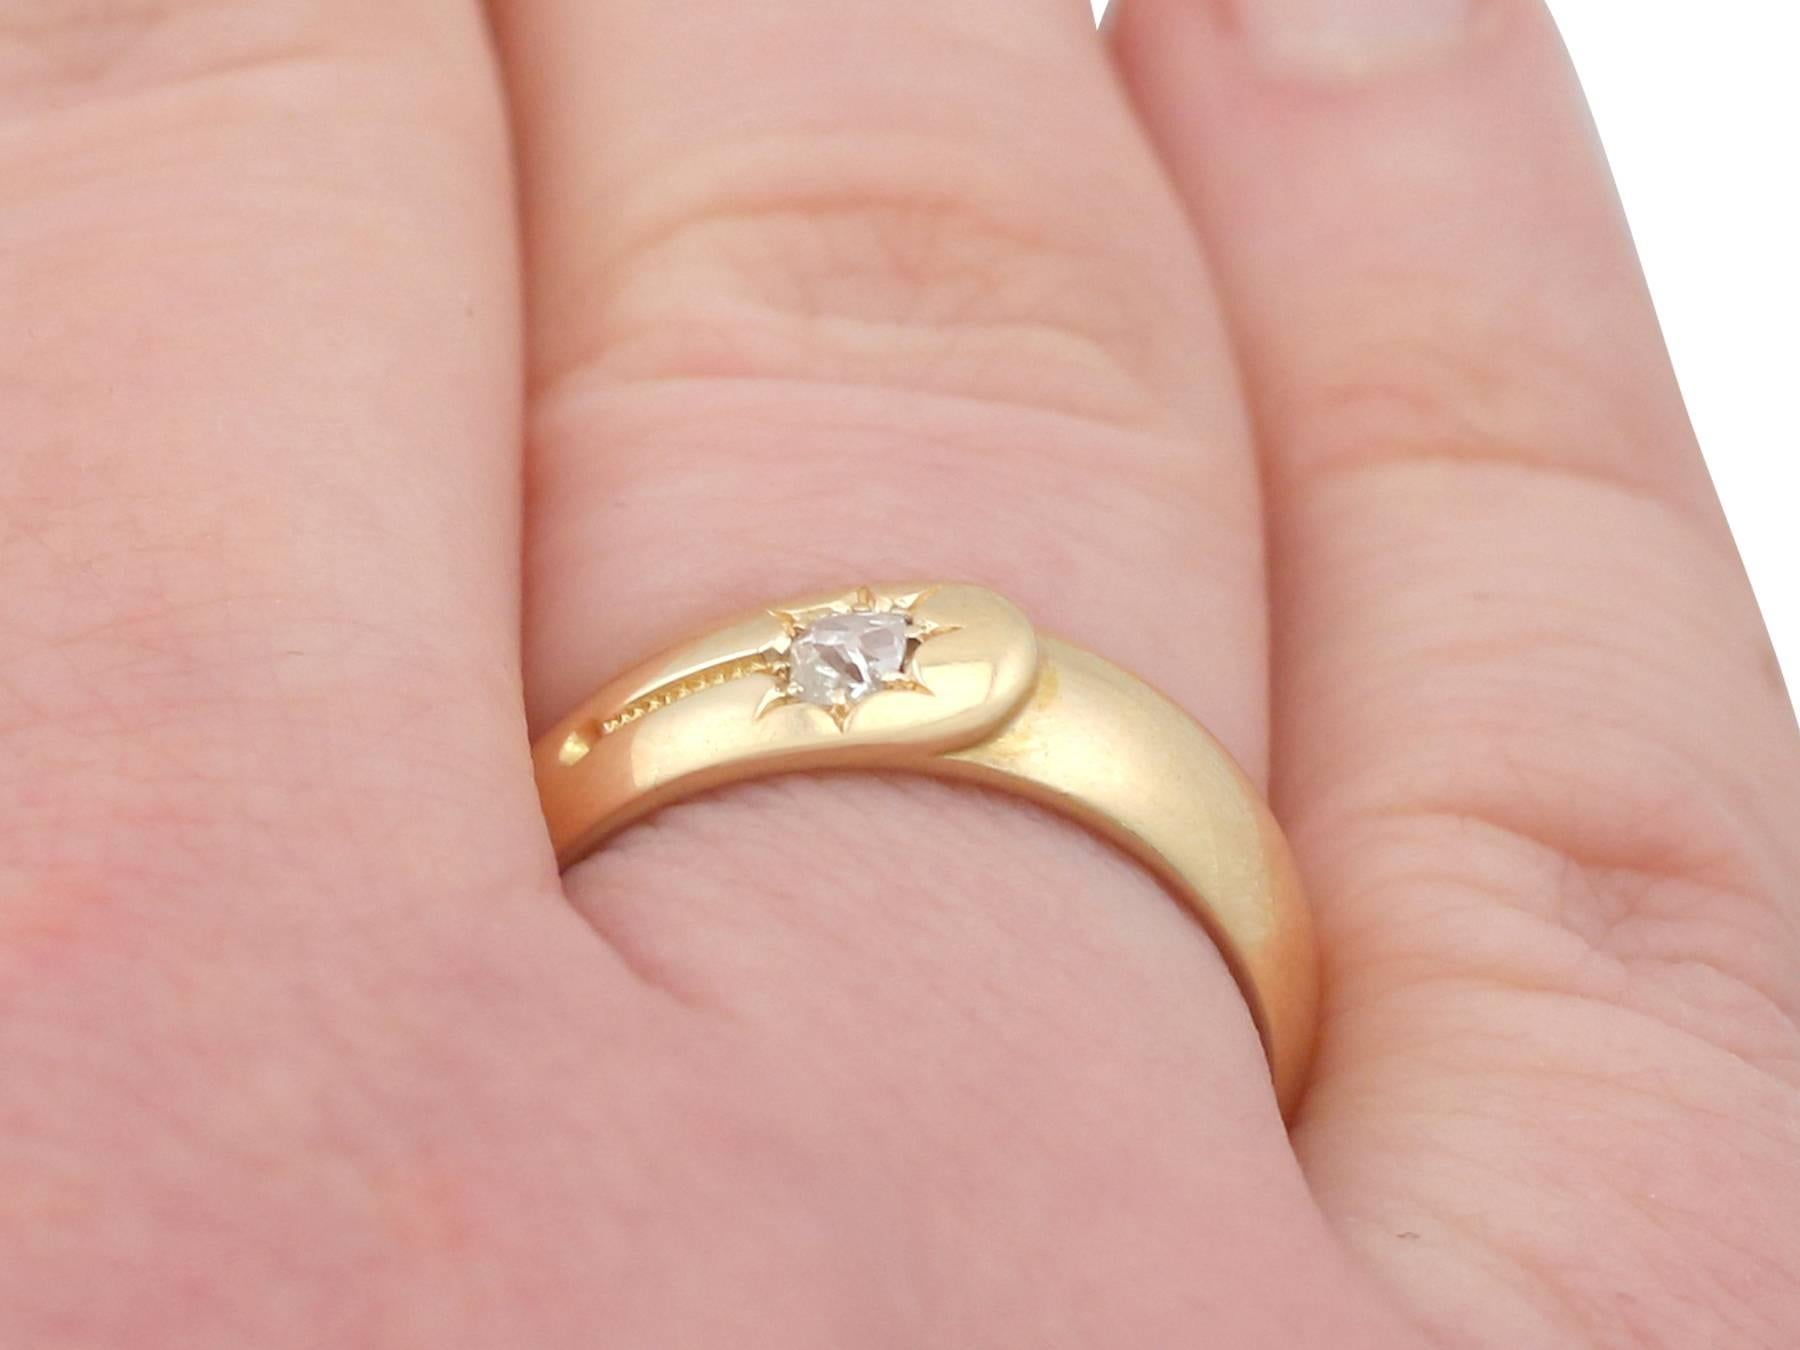 1880s Antique Diamond and Yellow Gold Wedding Band For Sale at 1stdibs